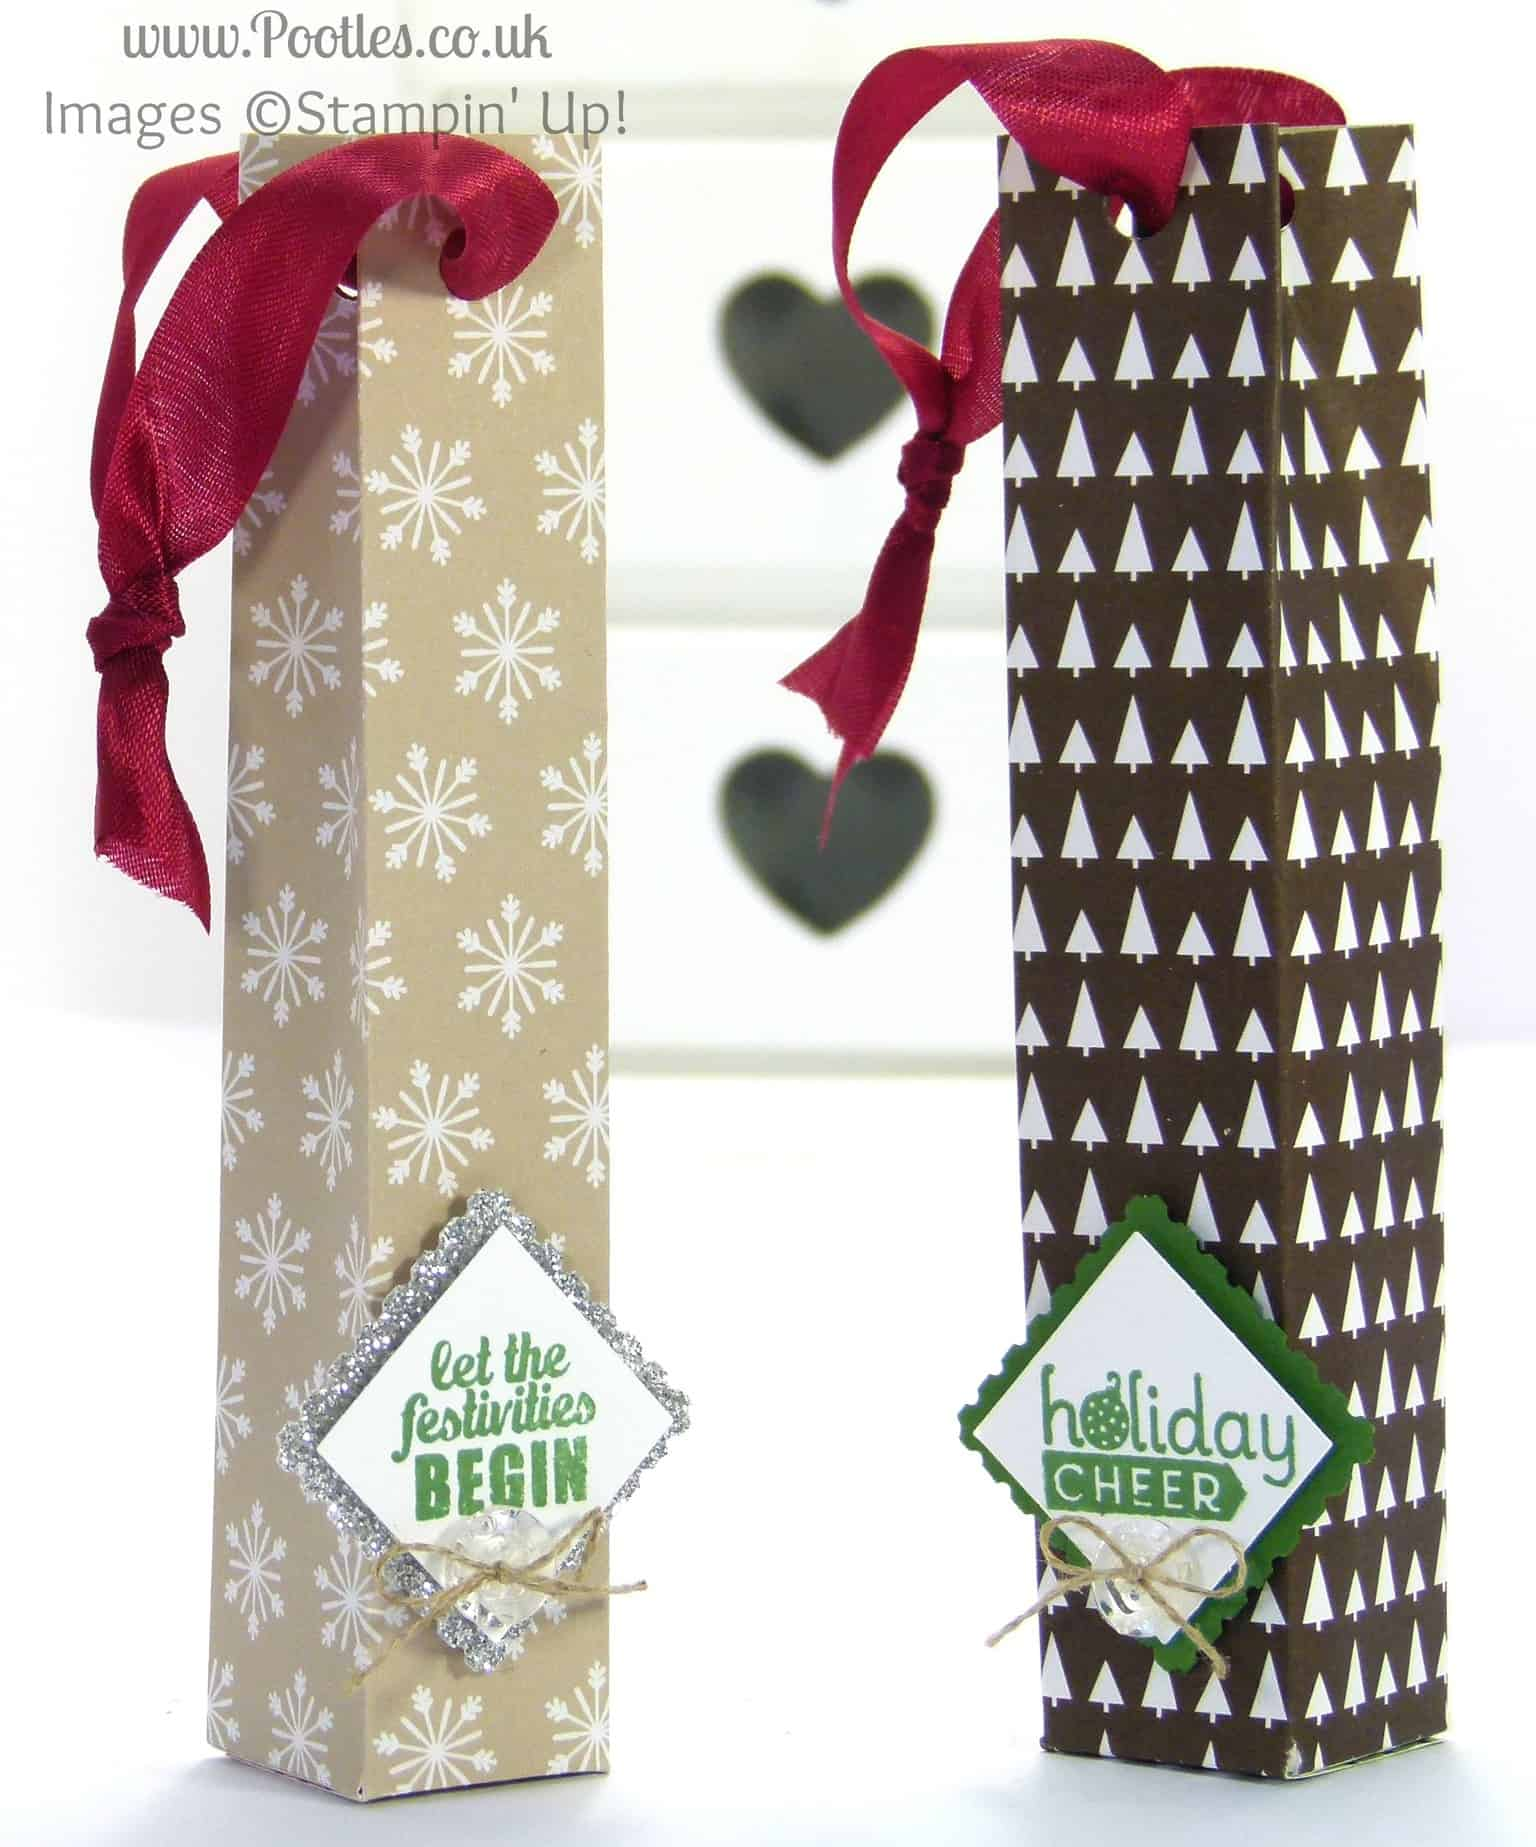 Stampin' Up! UK Demonstrator Pootles - Christmas Tree Hanging Bag Tutorial